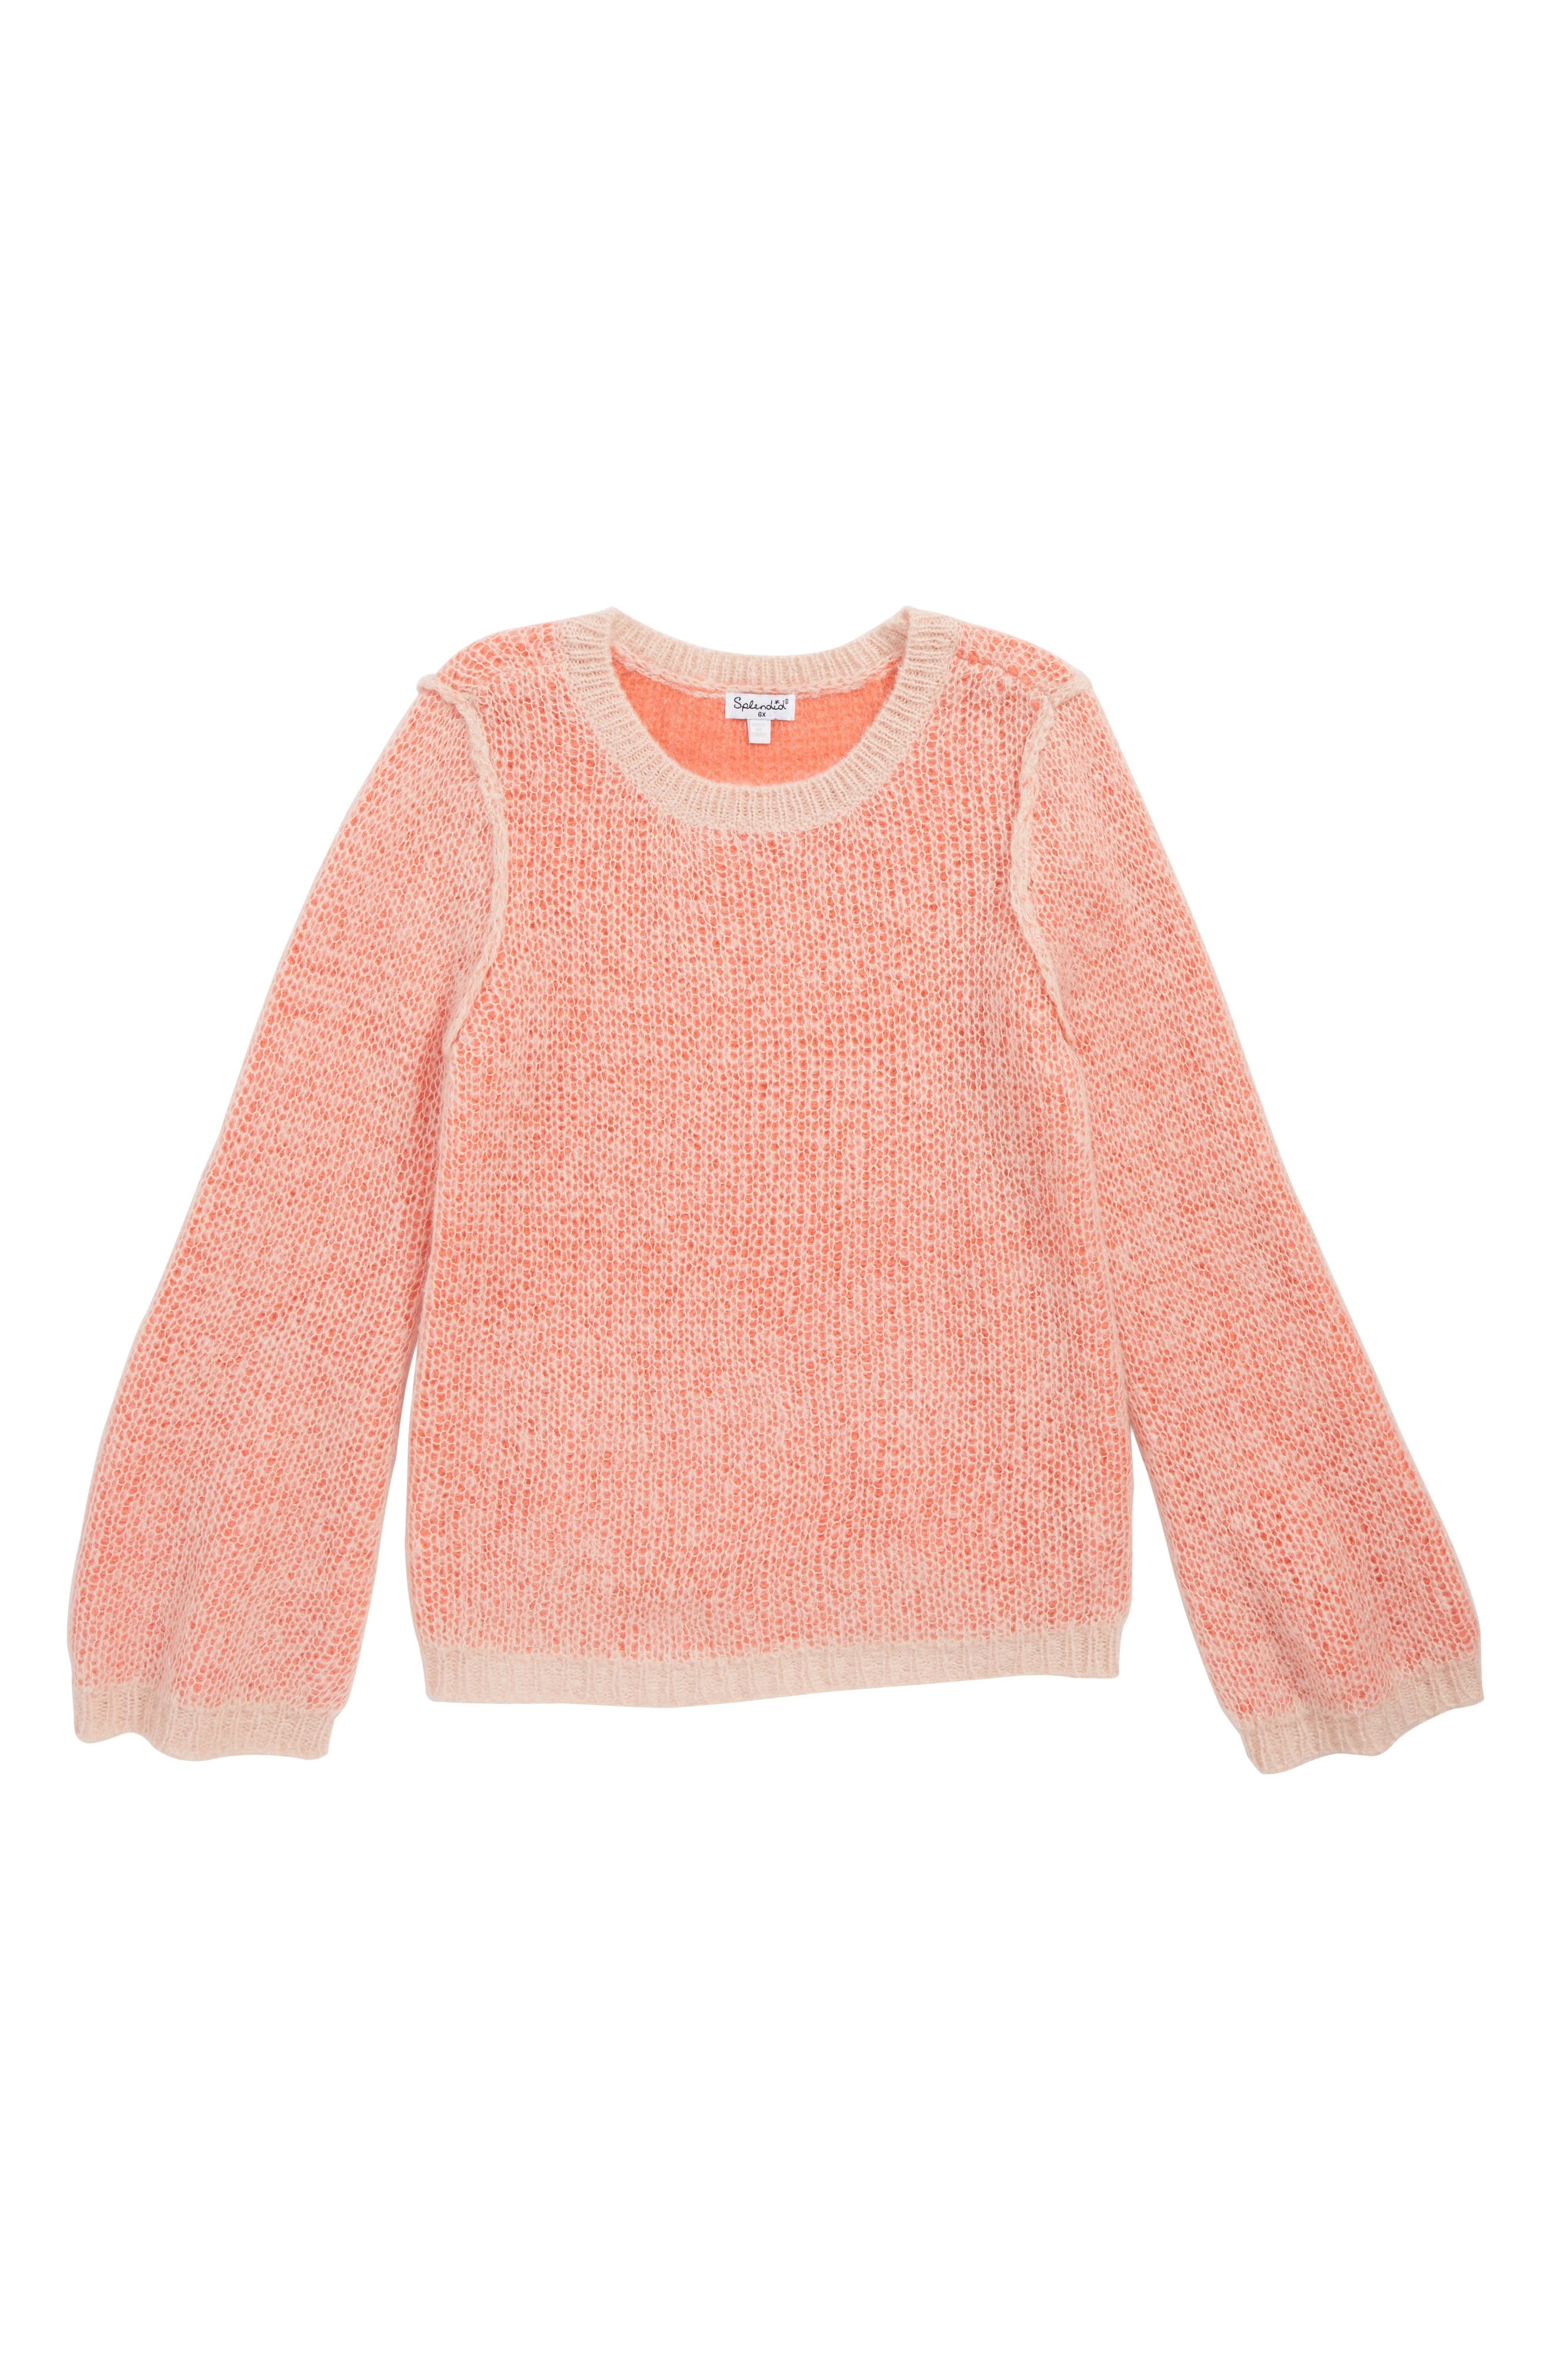 Two-Tone Sweater,                         Main,                         color, 650